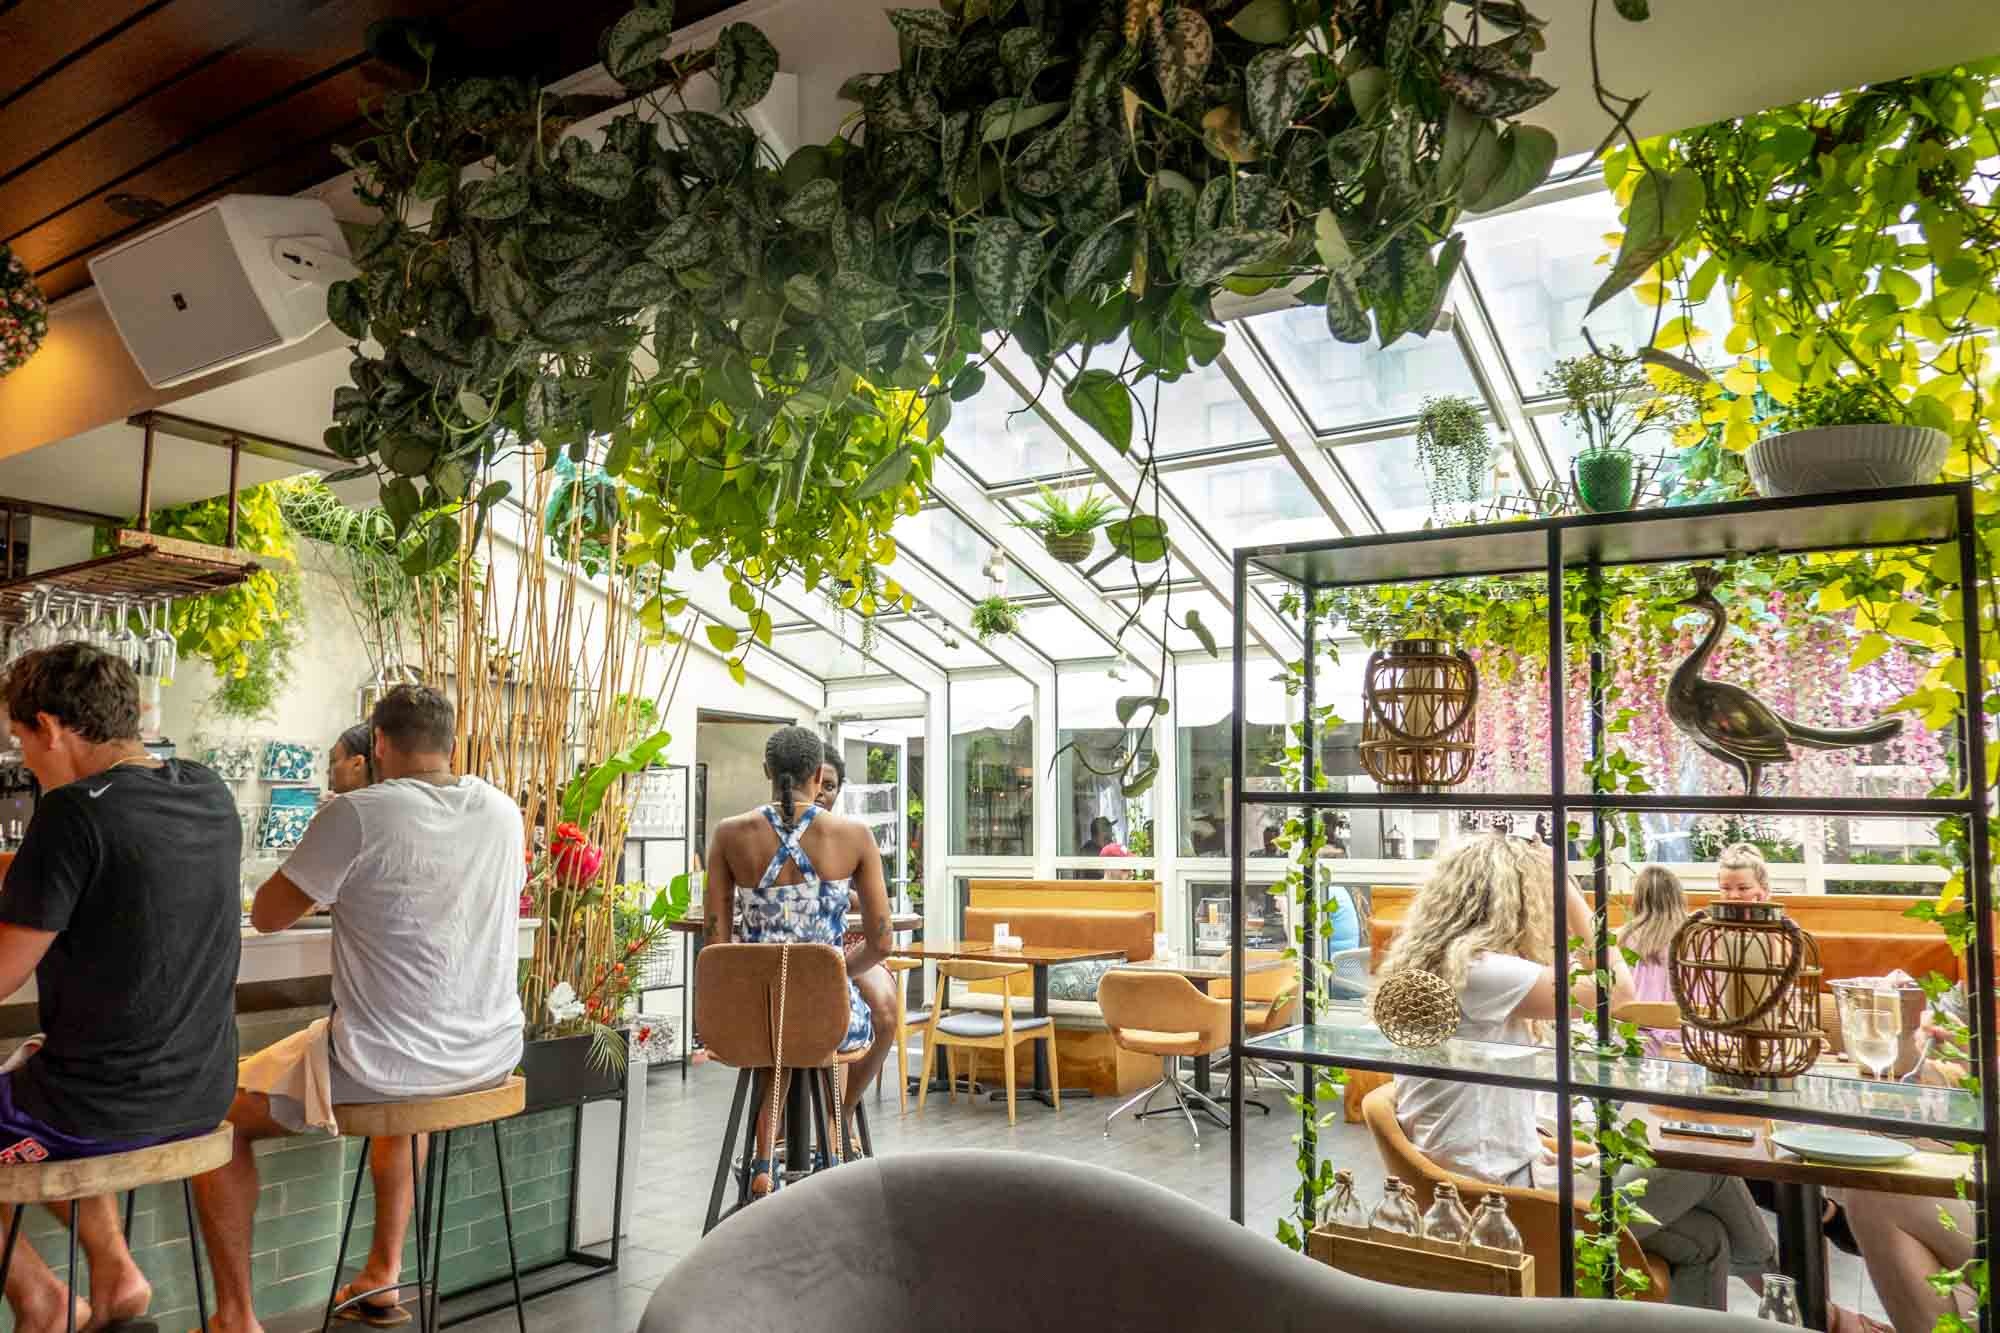 People seated at a bar and tables inside a room with a glass roof decorated with plants